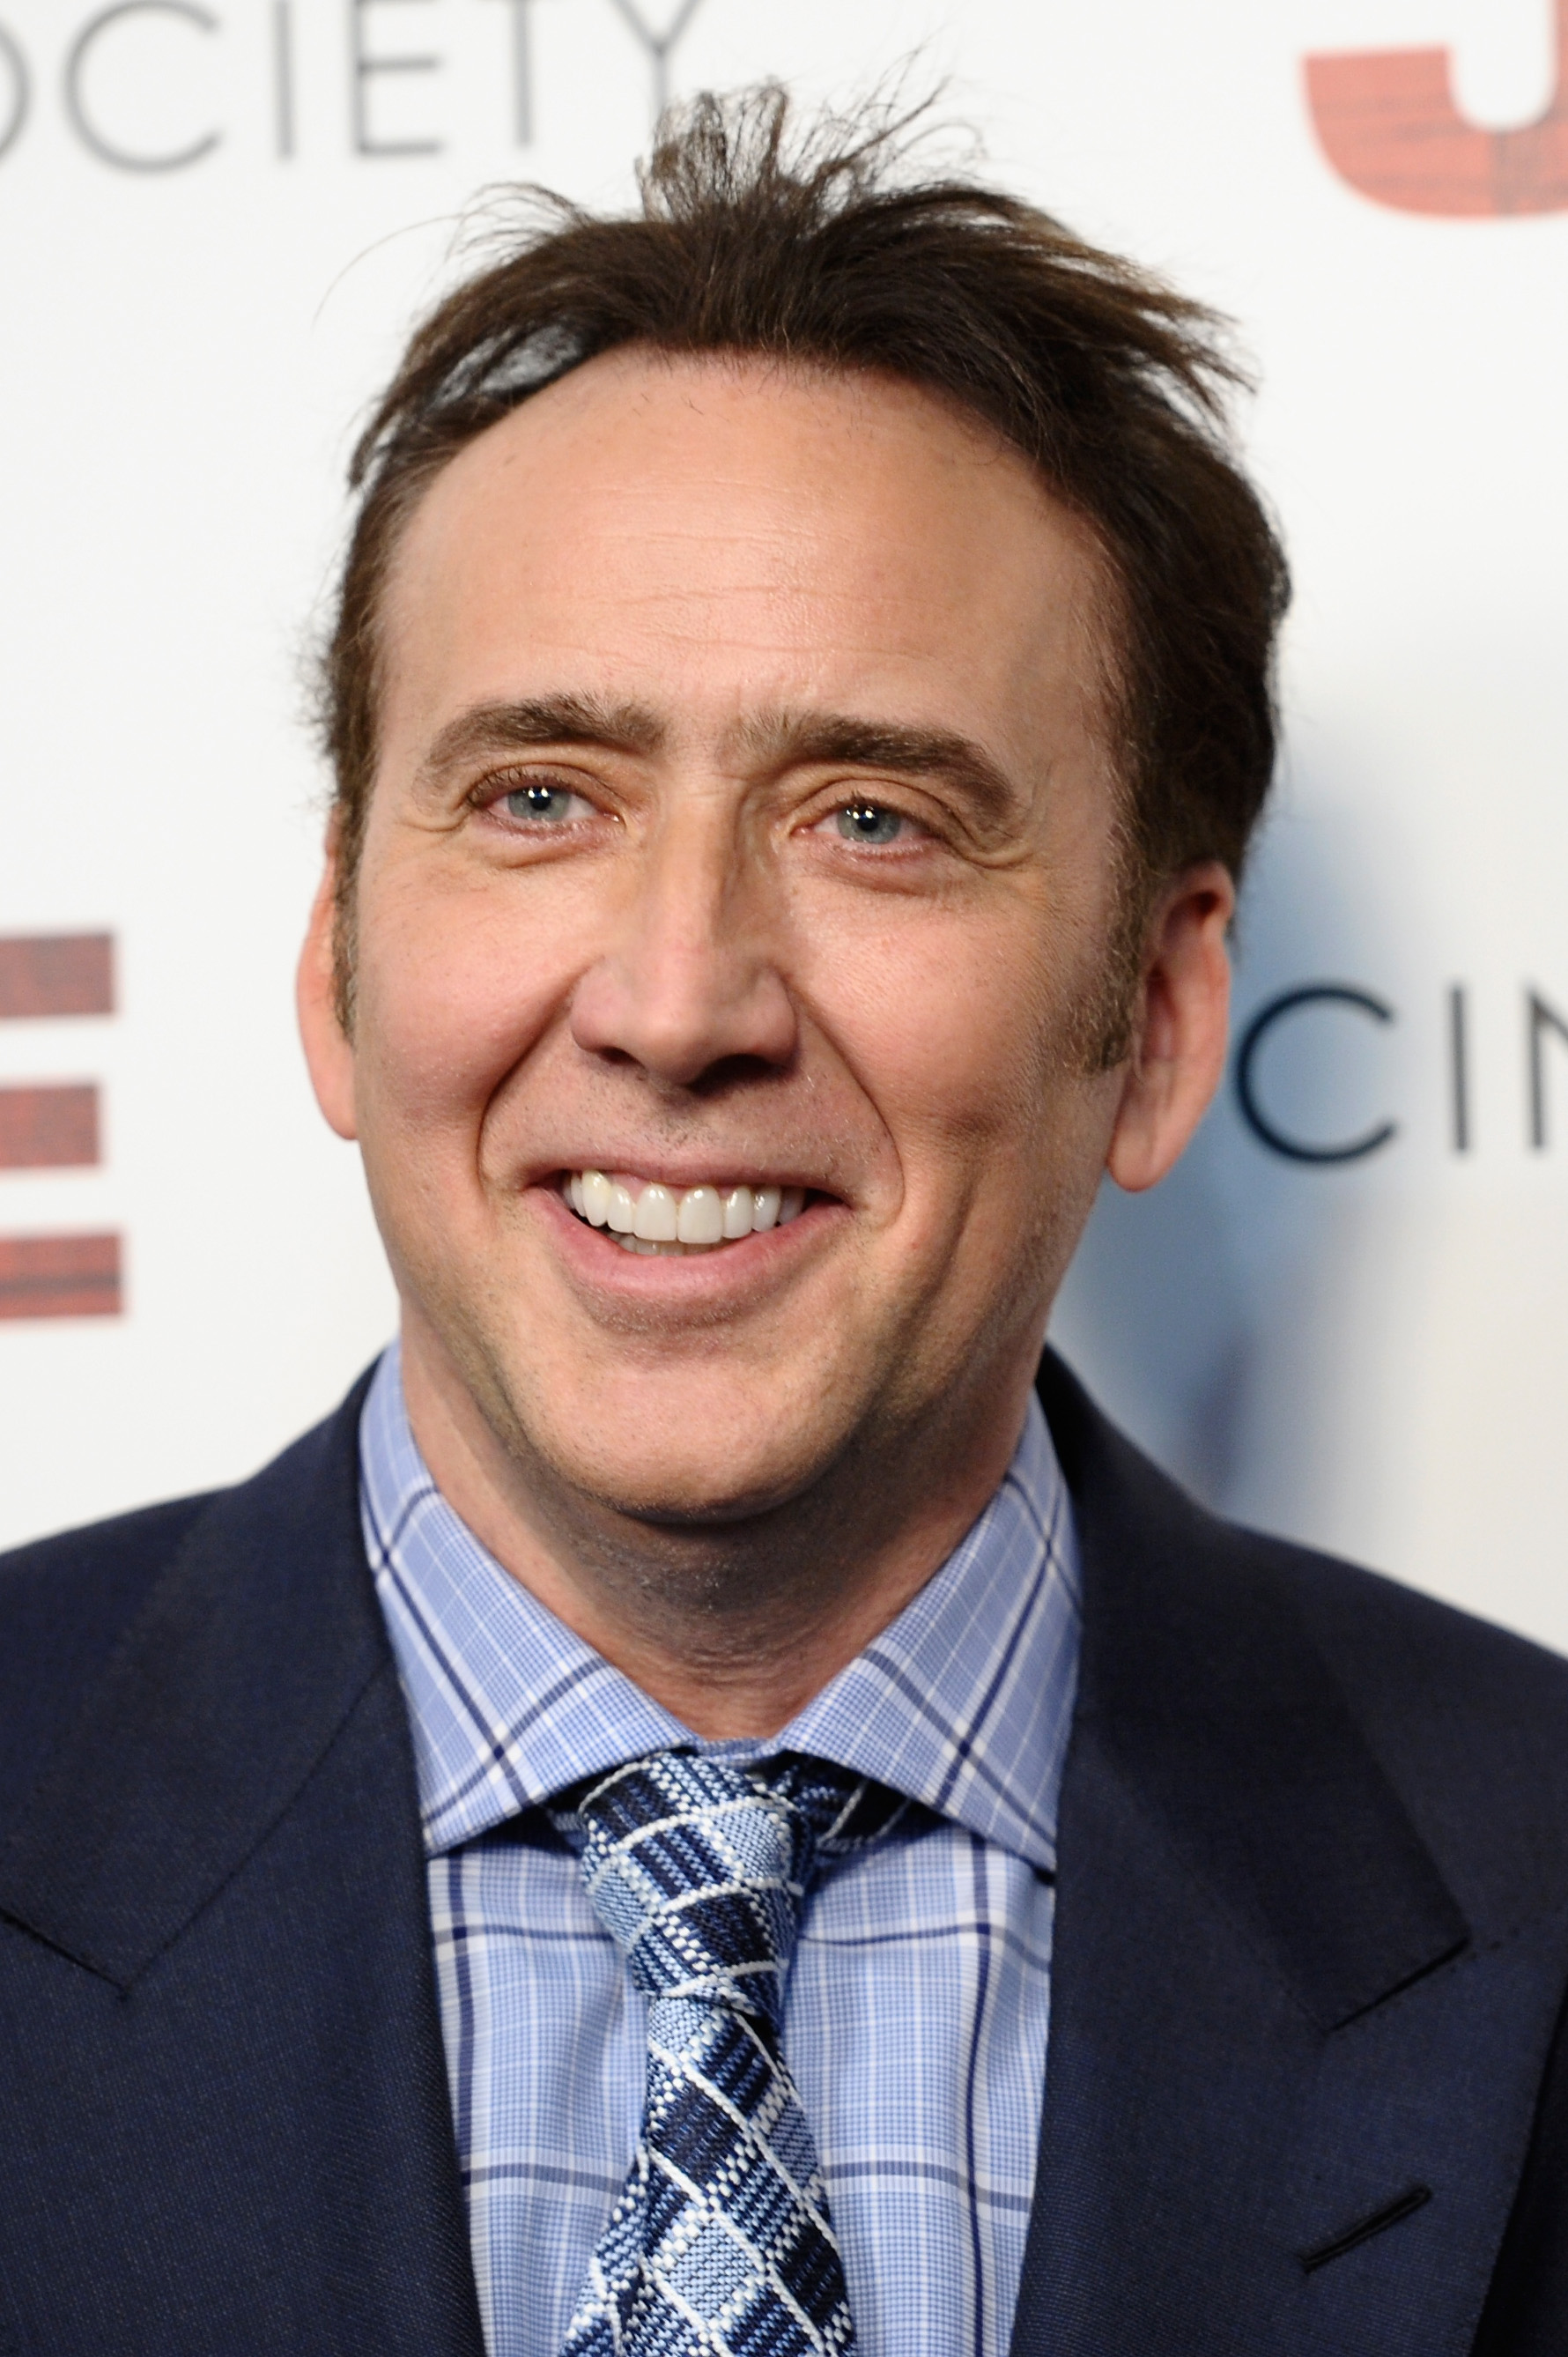 Nicolas Cage attends the a screening of  Joe  April 9, 2014 in New York City.